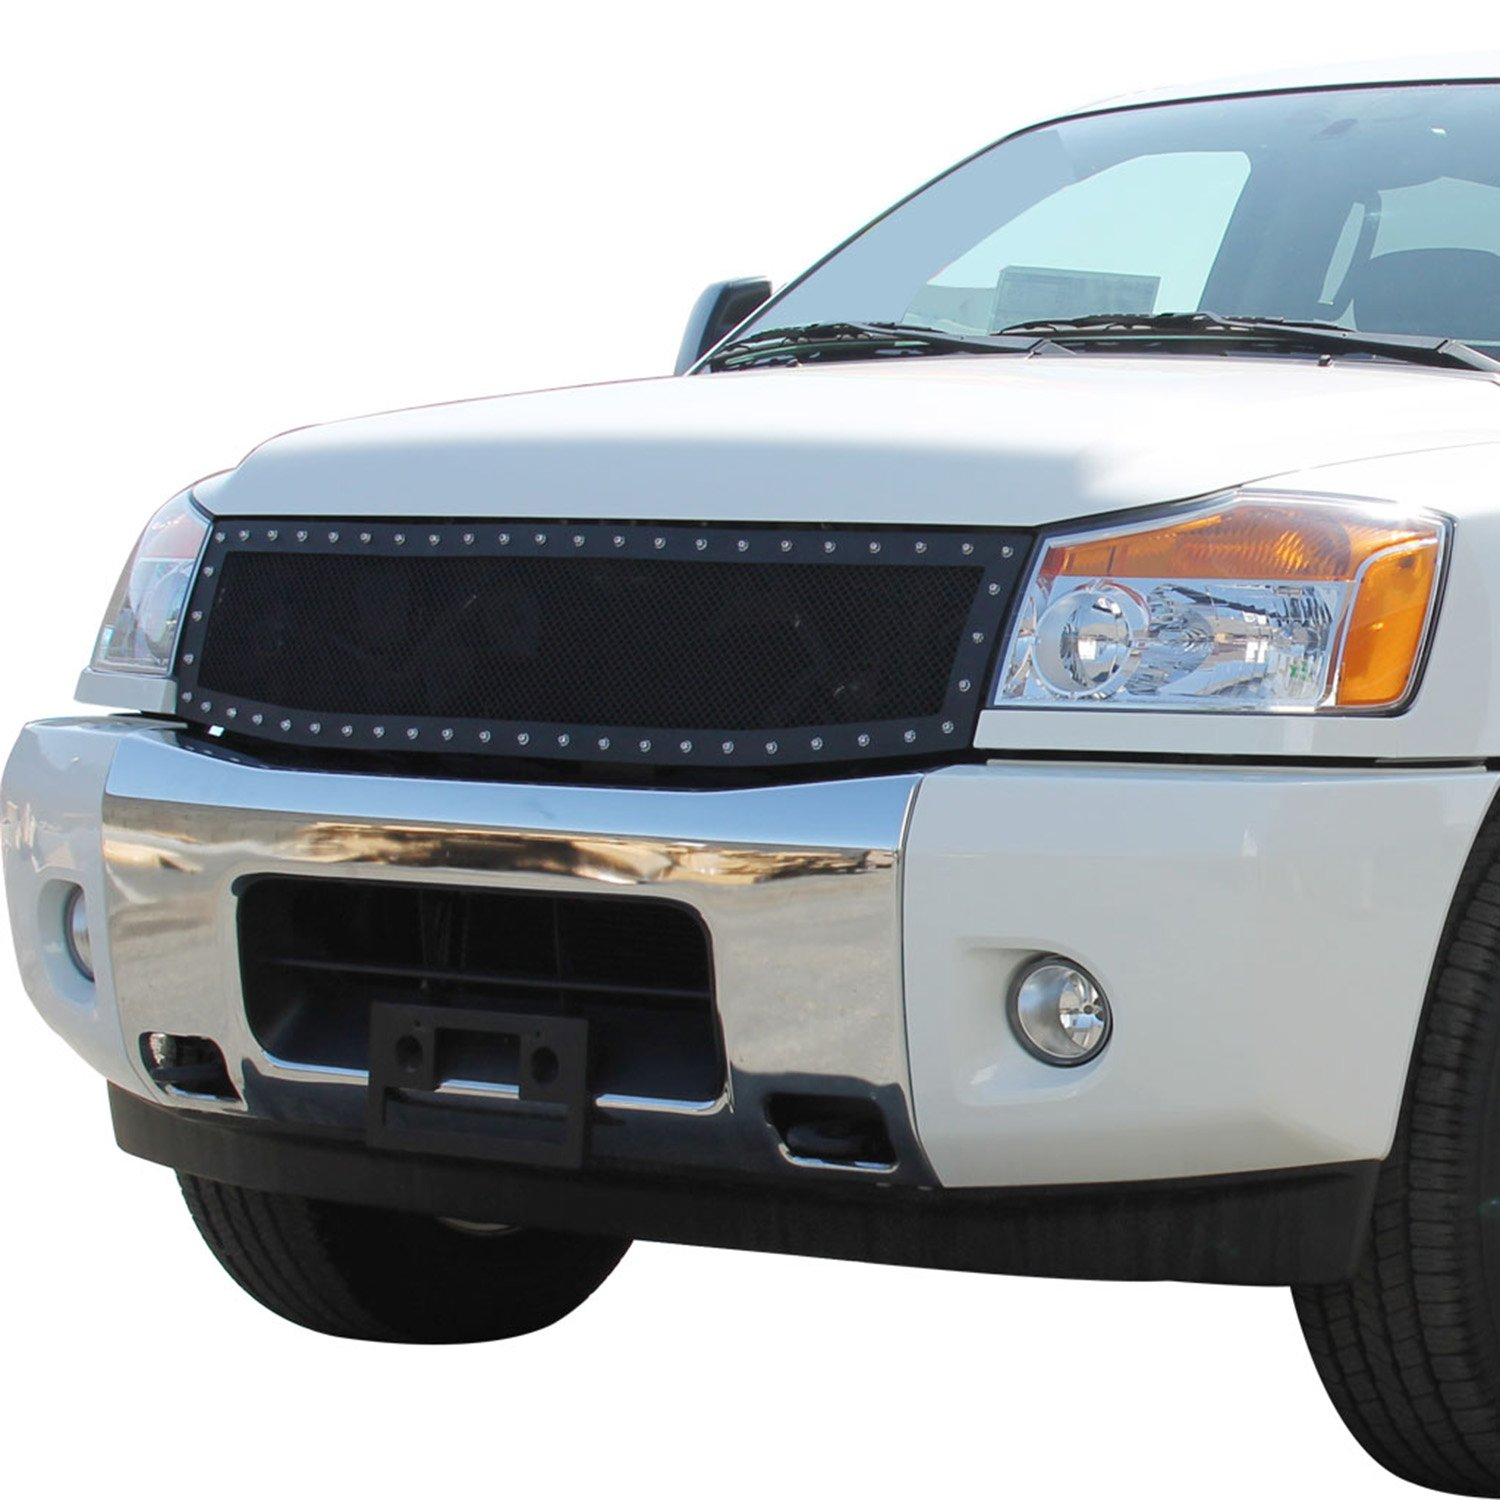 Cheap Nissan Titan Mesh Grille Find Nissan Titan Mesh Grille Deals On Line At Alibaba Com